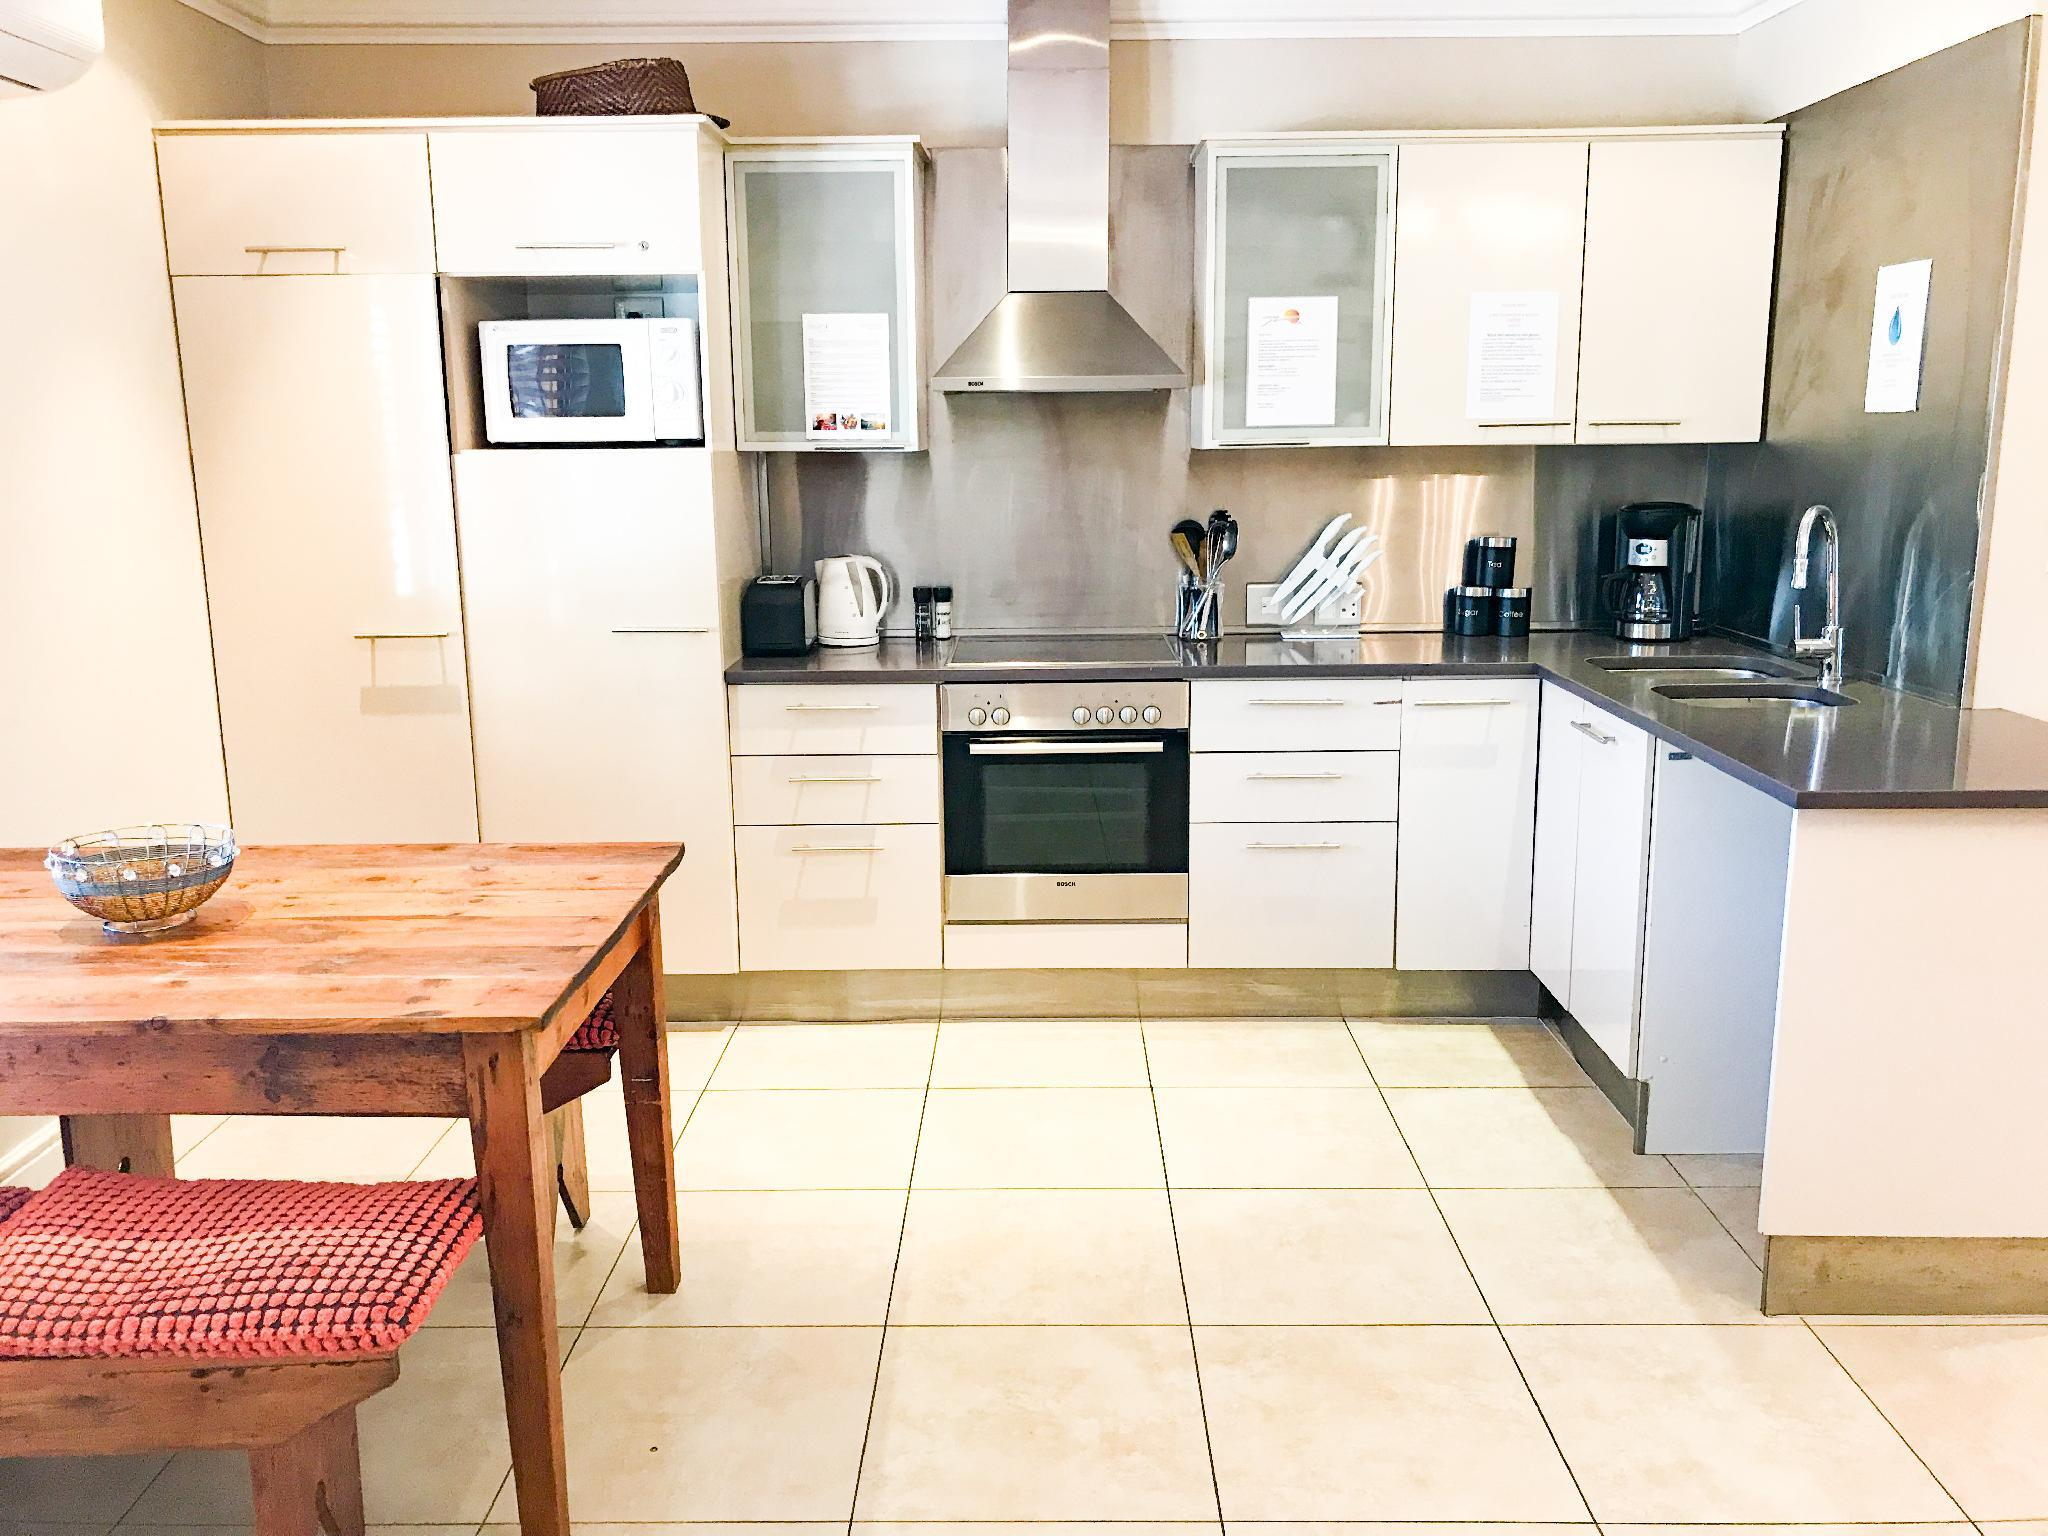 best price on sunshine letting self catering apartments in cape town rh agoda com Ceramic Tile Kitchen Furniture South Africa